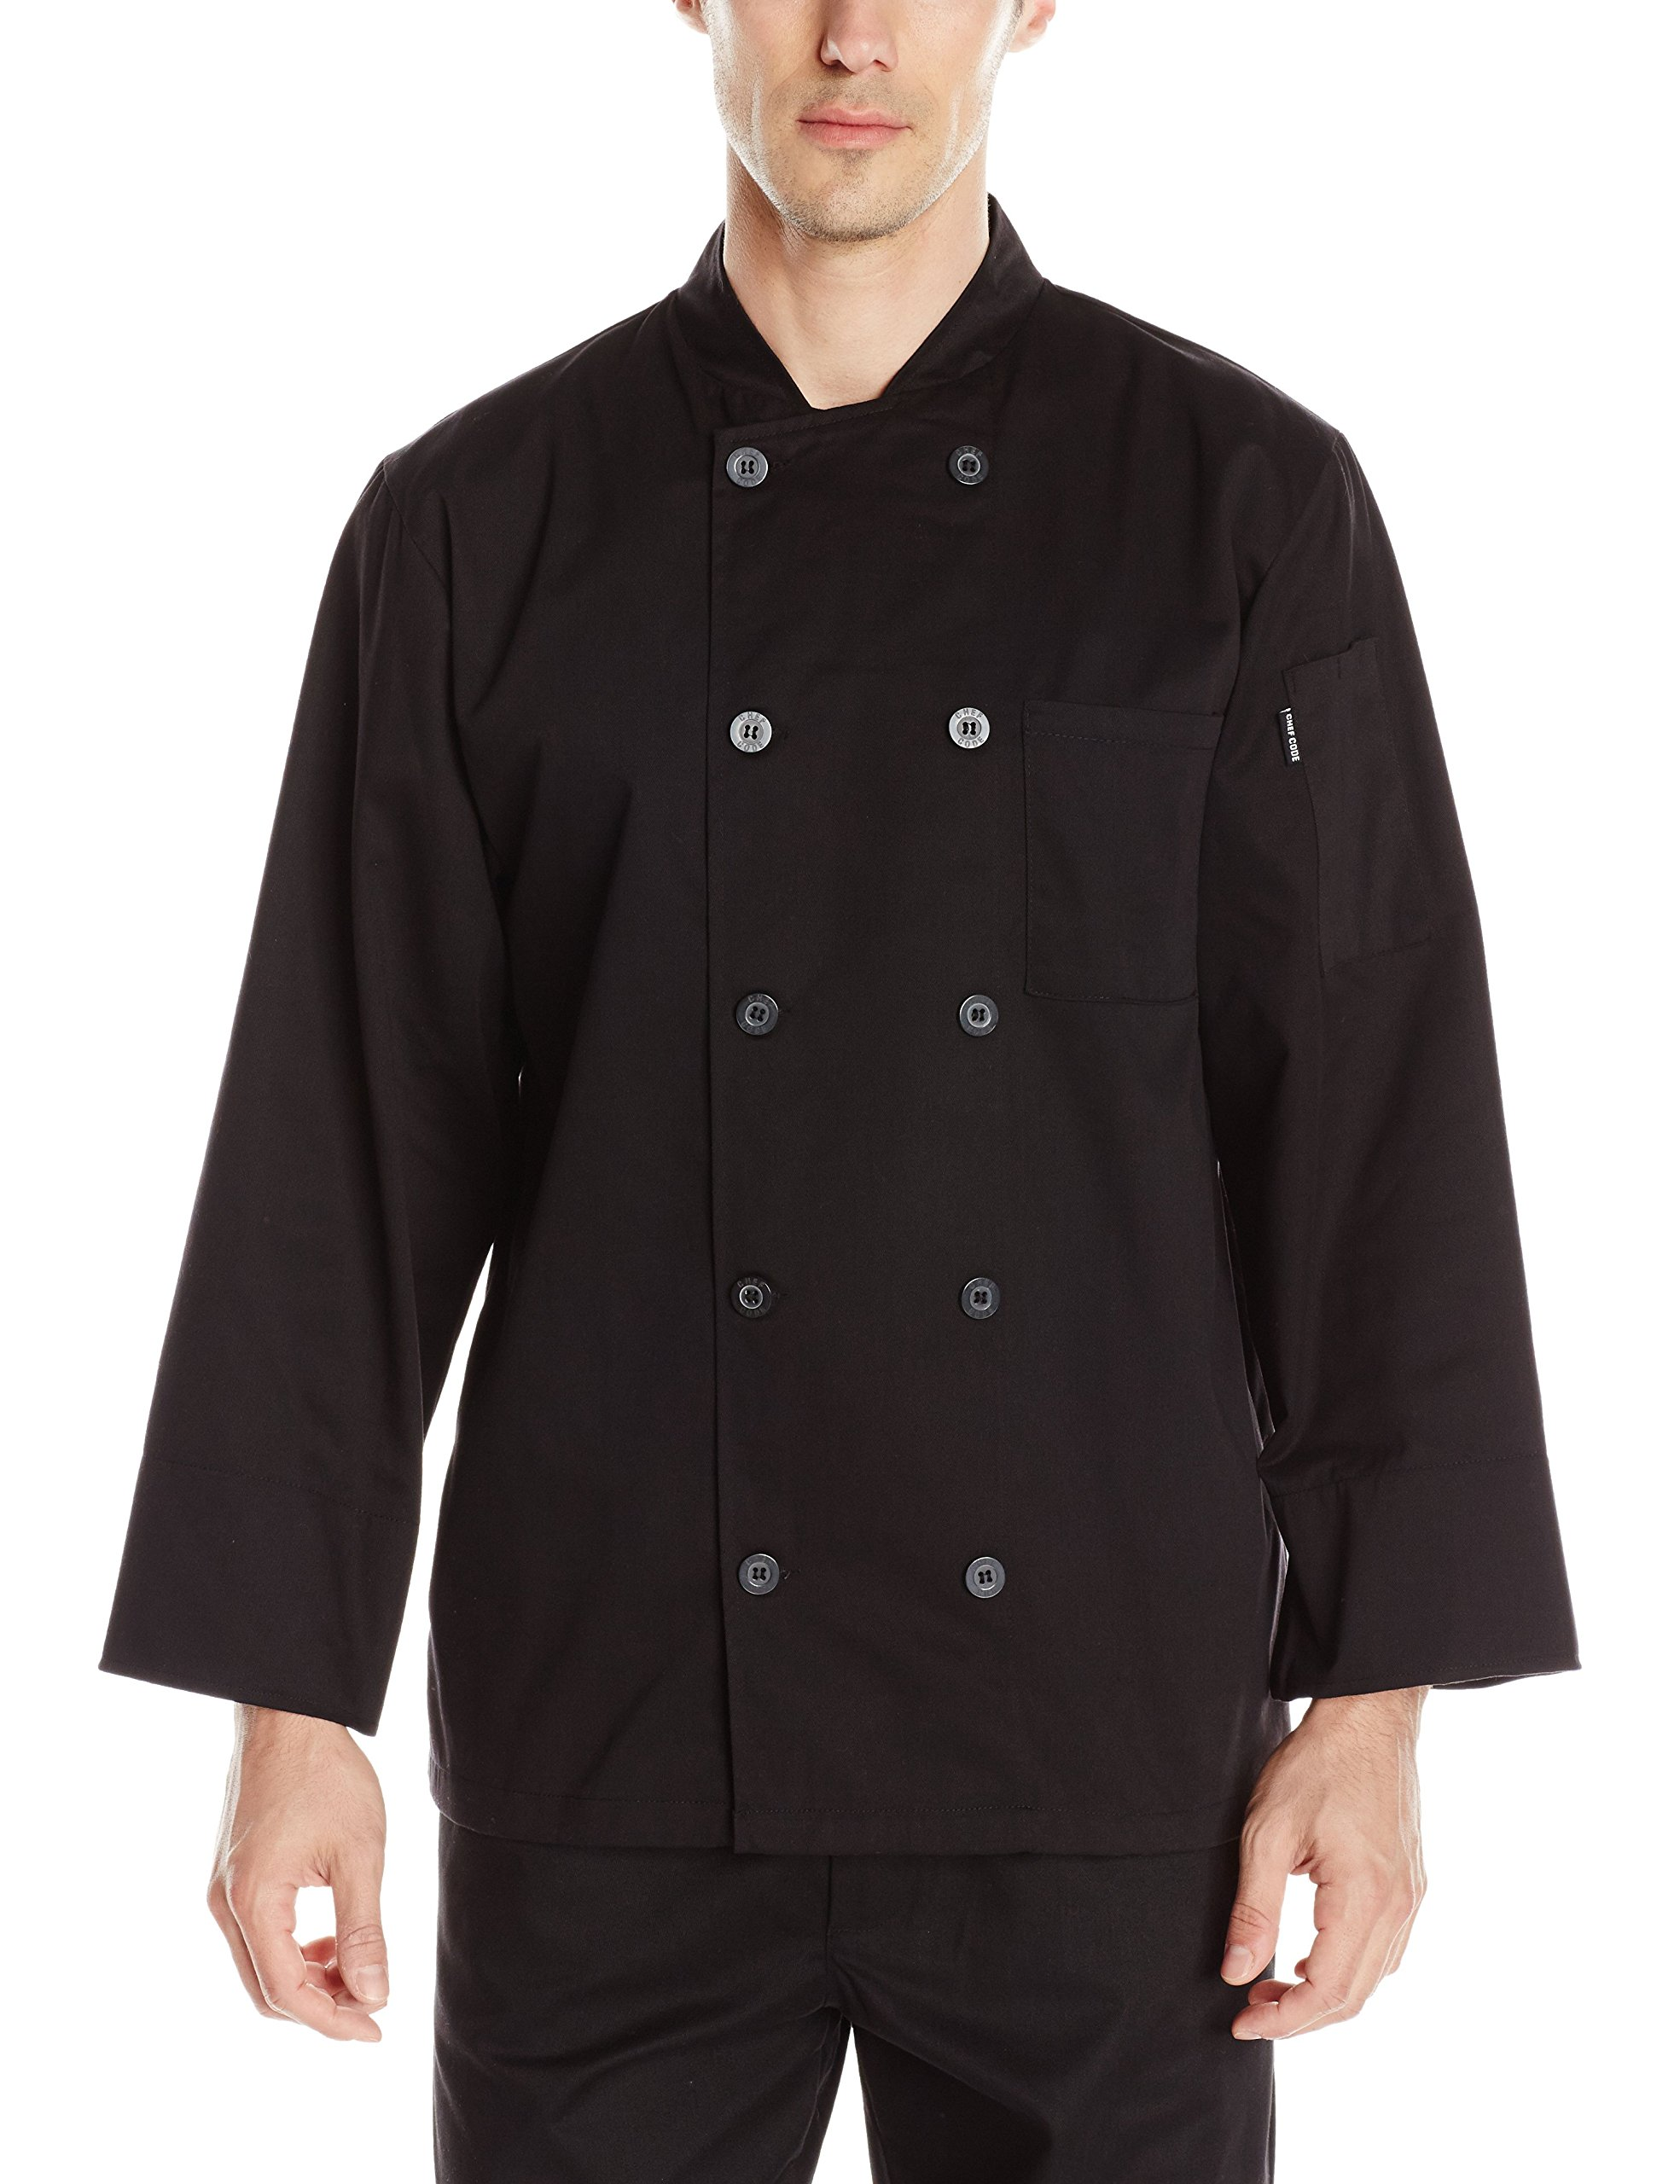 Chef Code Men's Basic Pearl Button Long Sleeve Coat, Black, Medium